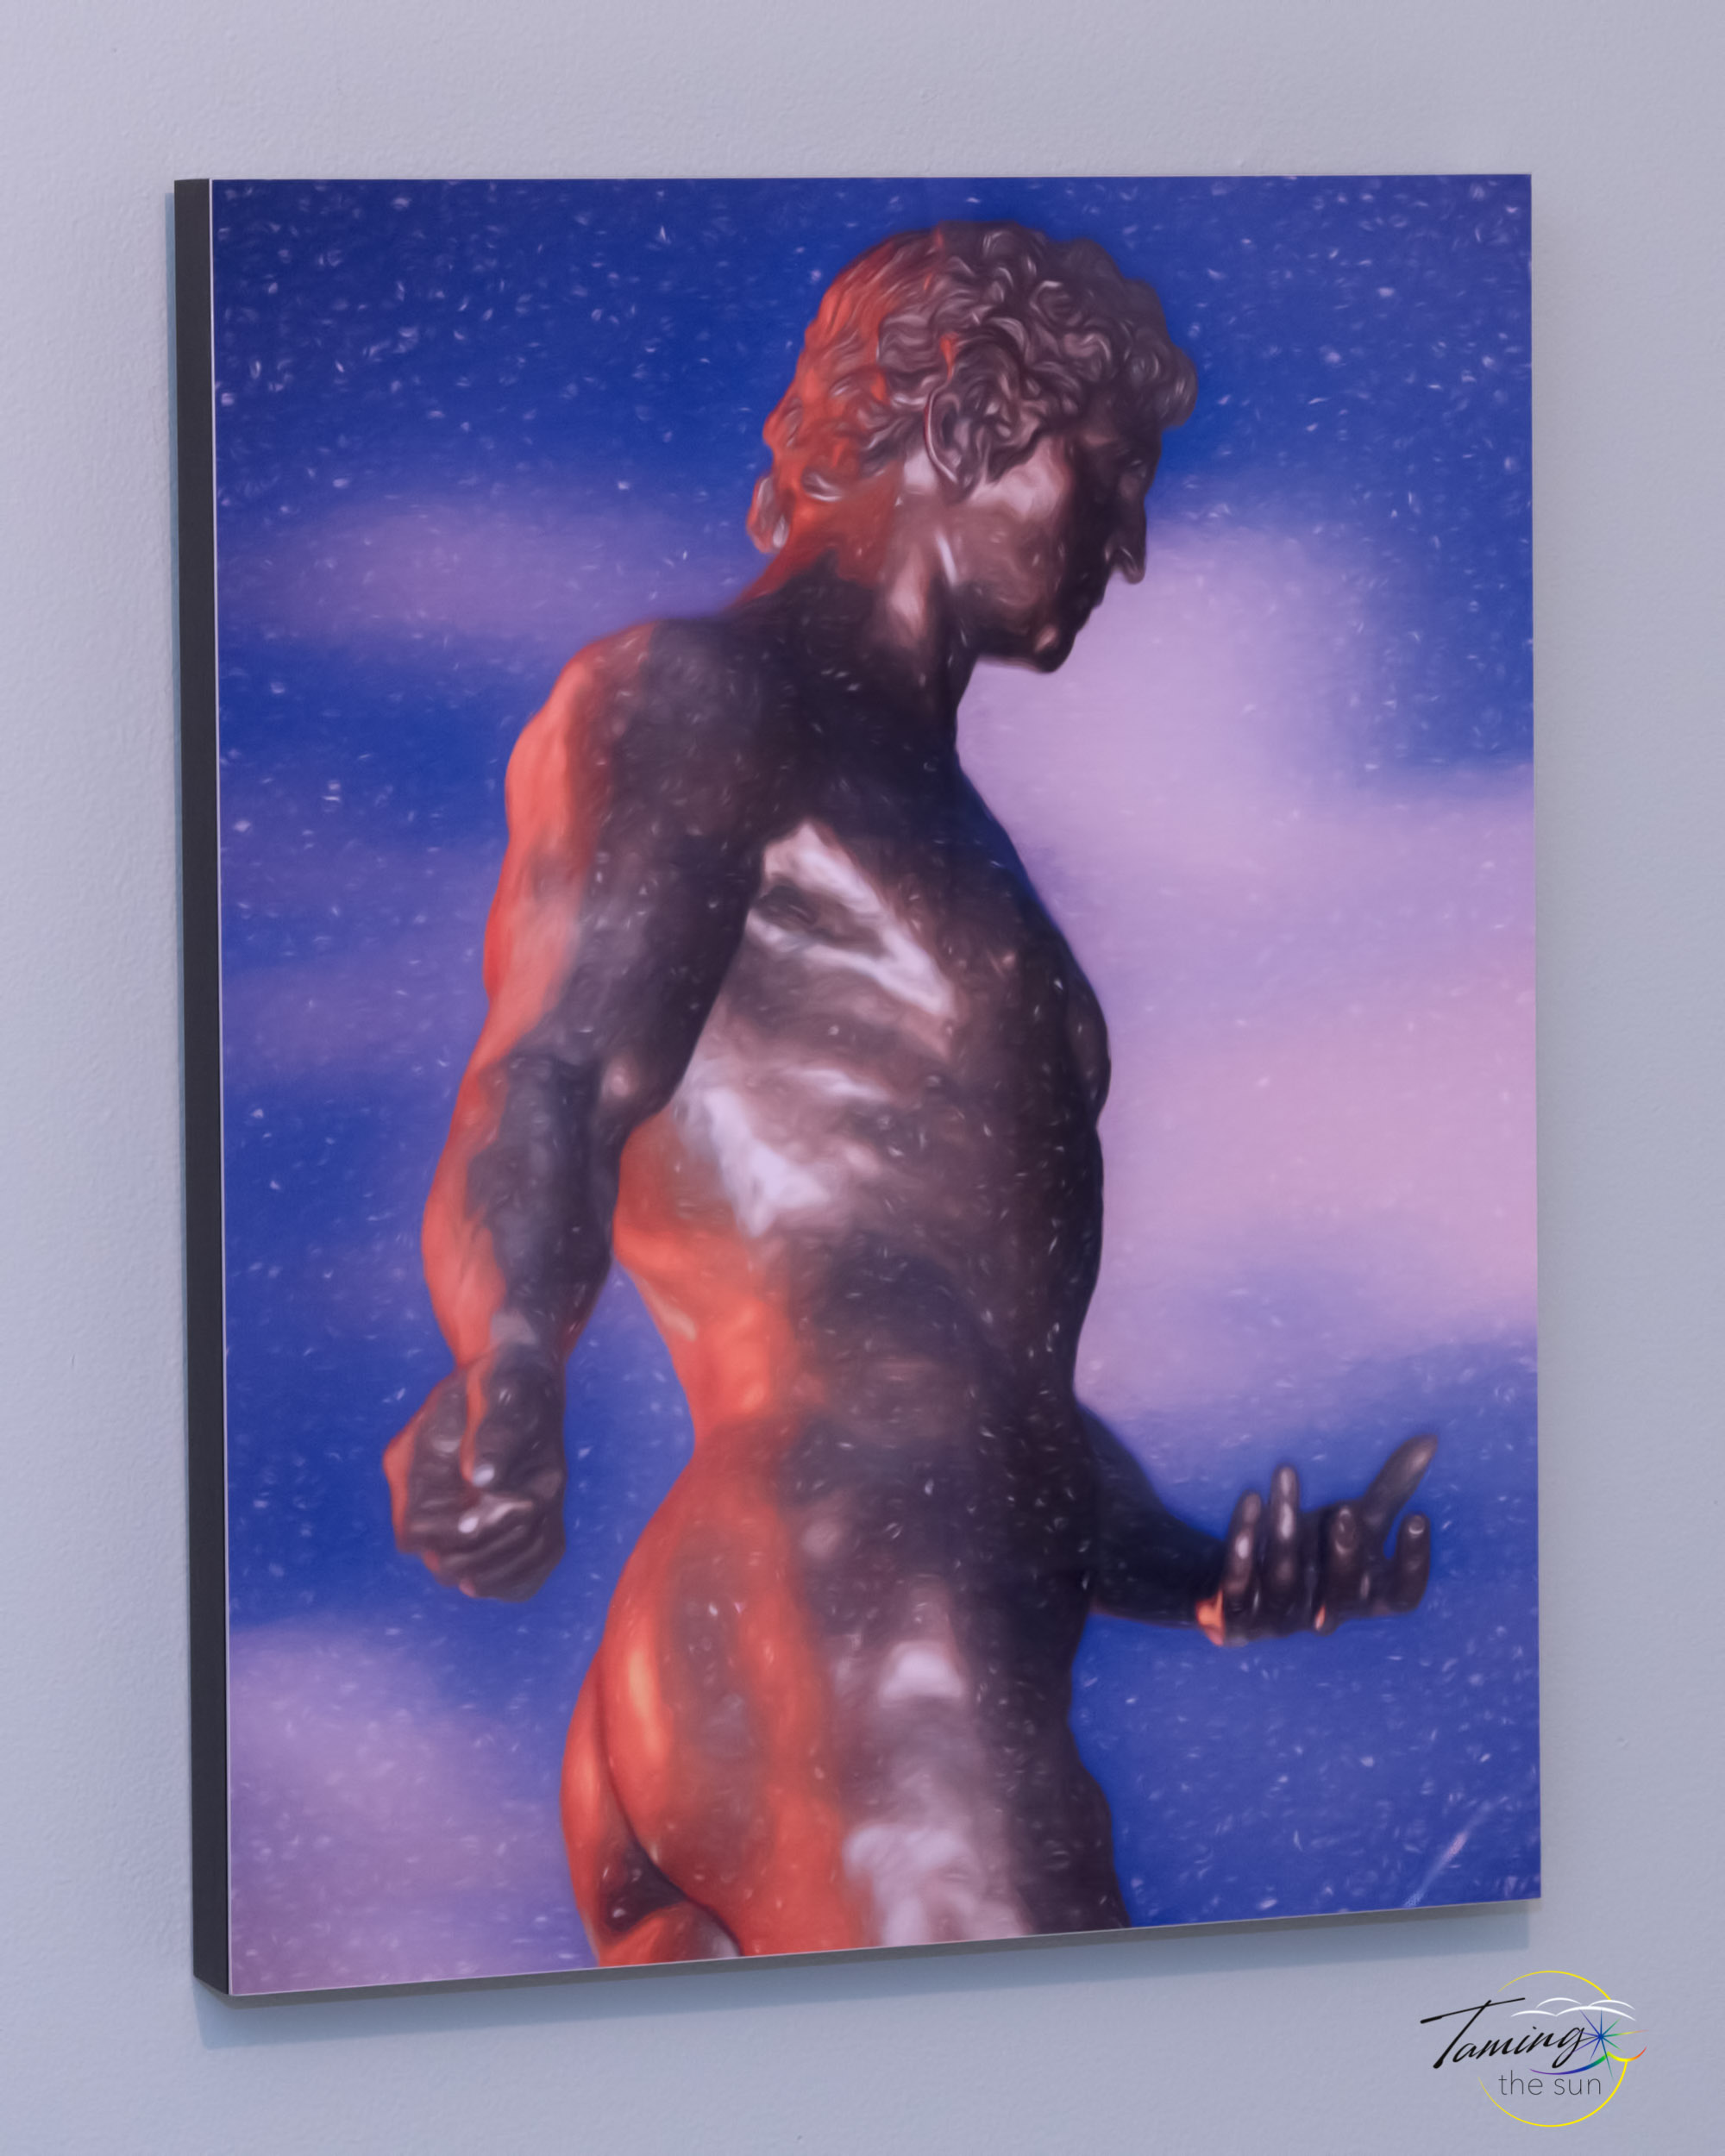 Sower at Dusk (not yet released)